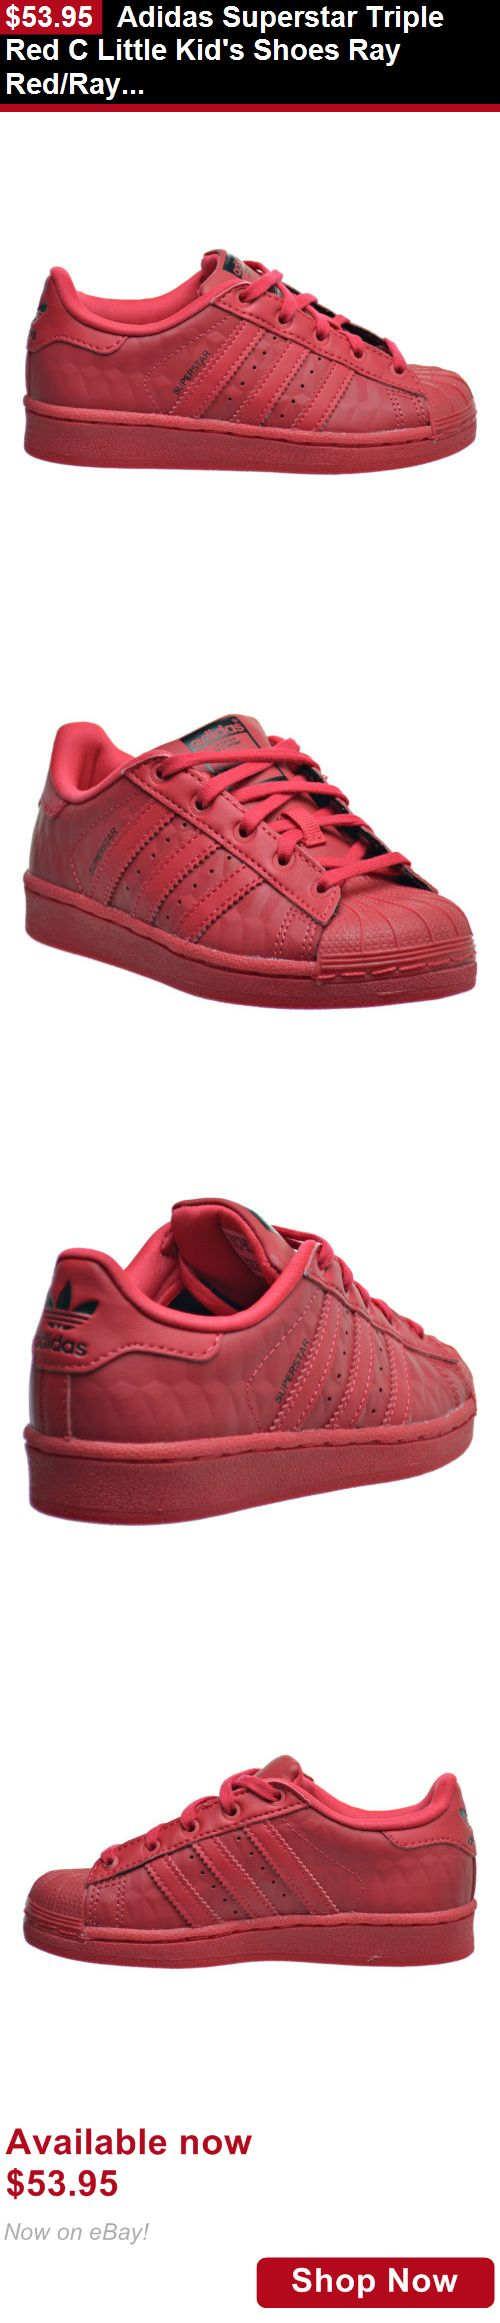 Children boys clothing shoes and accessories: Adidas Superstar Triple Red C Little Kids Shoes Ray Red/Ray Red/Black B27525 BUY IT NOW ONLY: $53.95